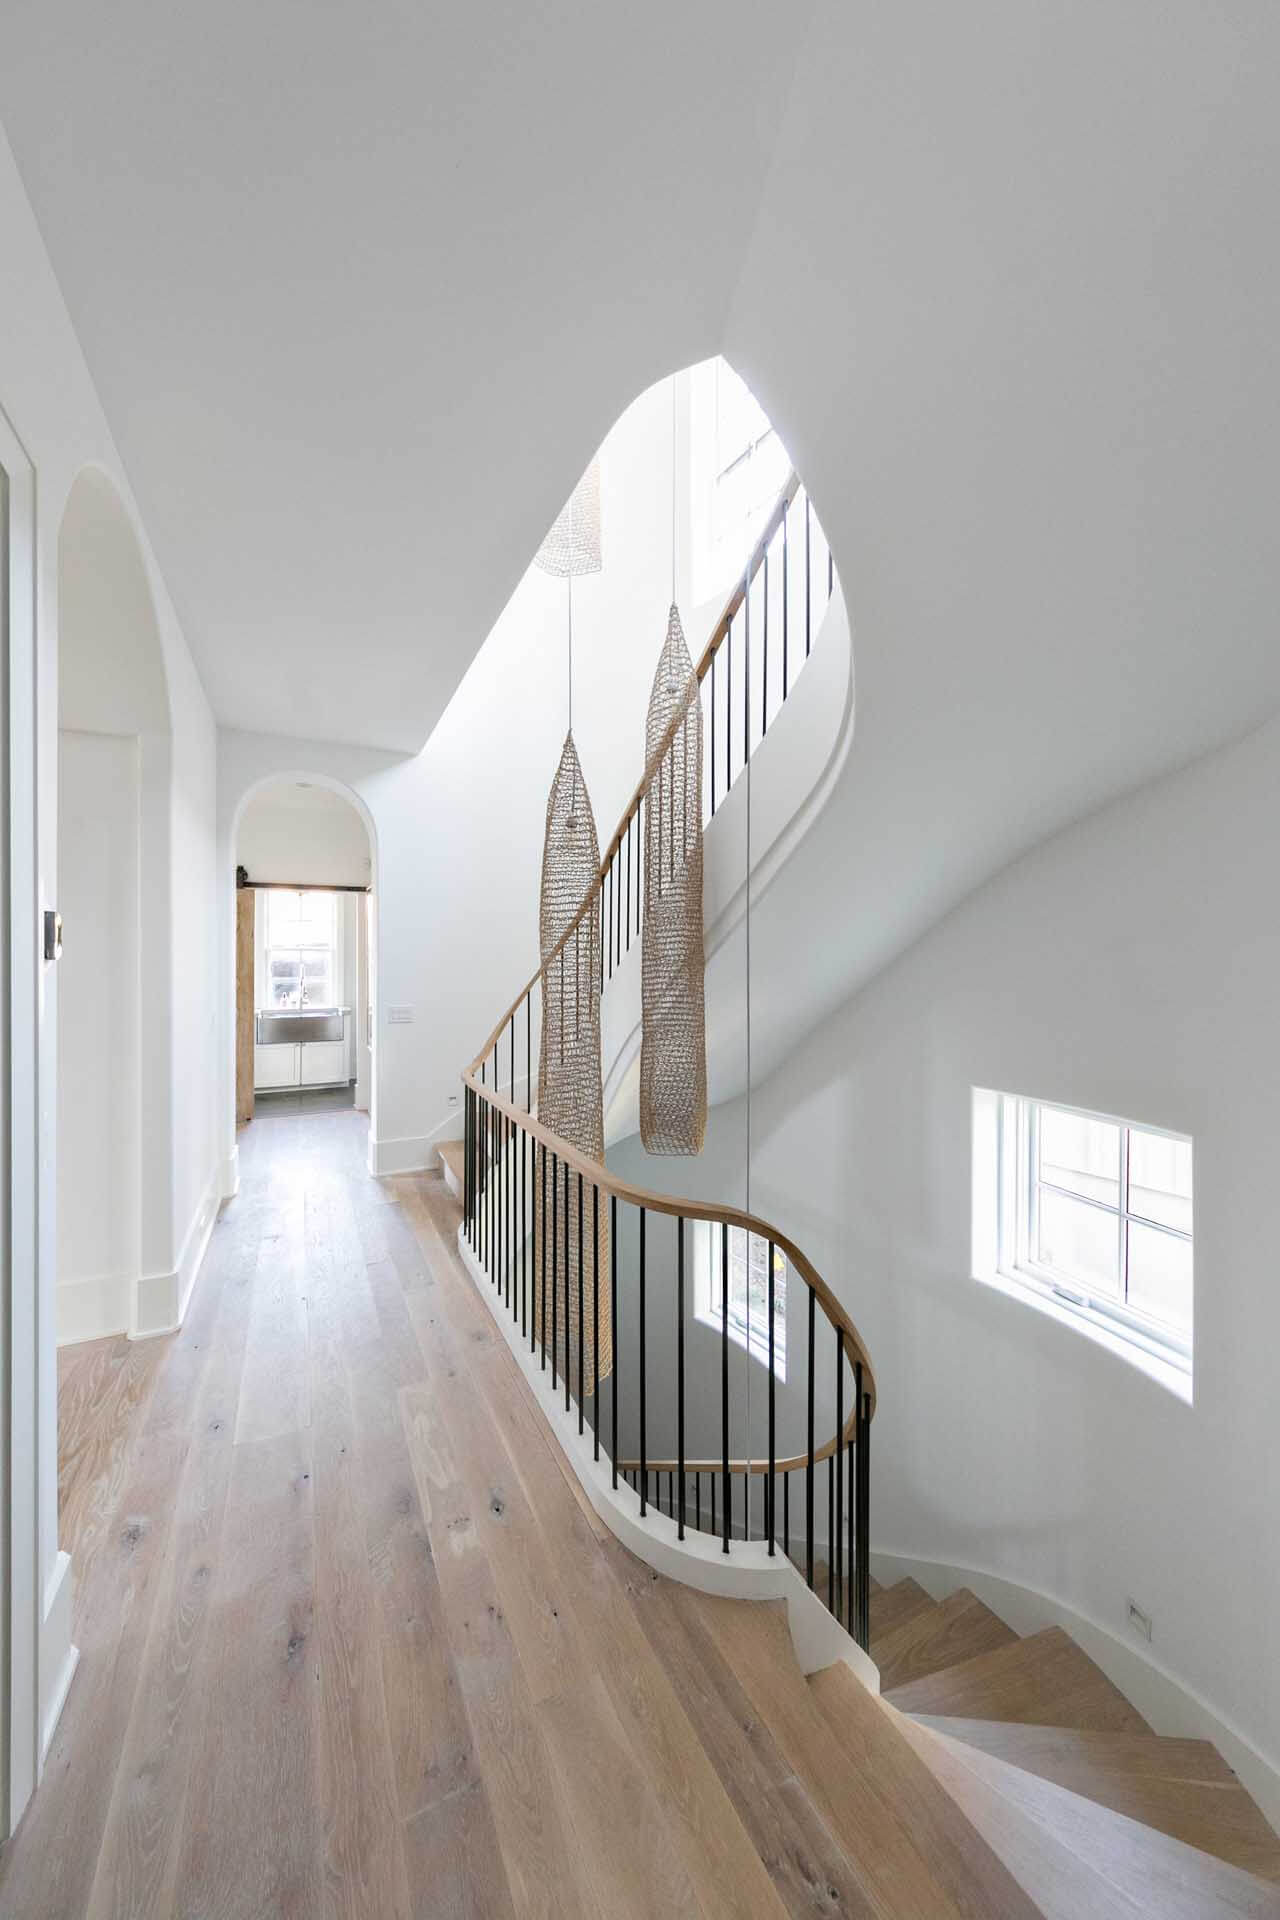 A wood staircase leads to a hallway with hardwood flooring.